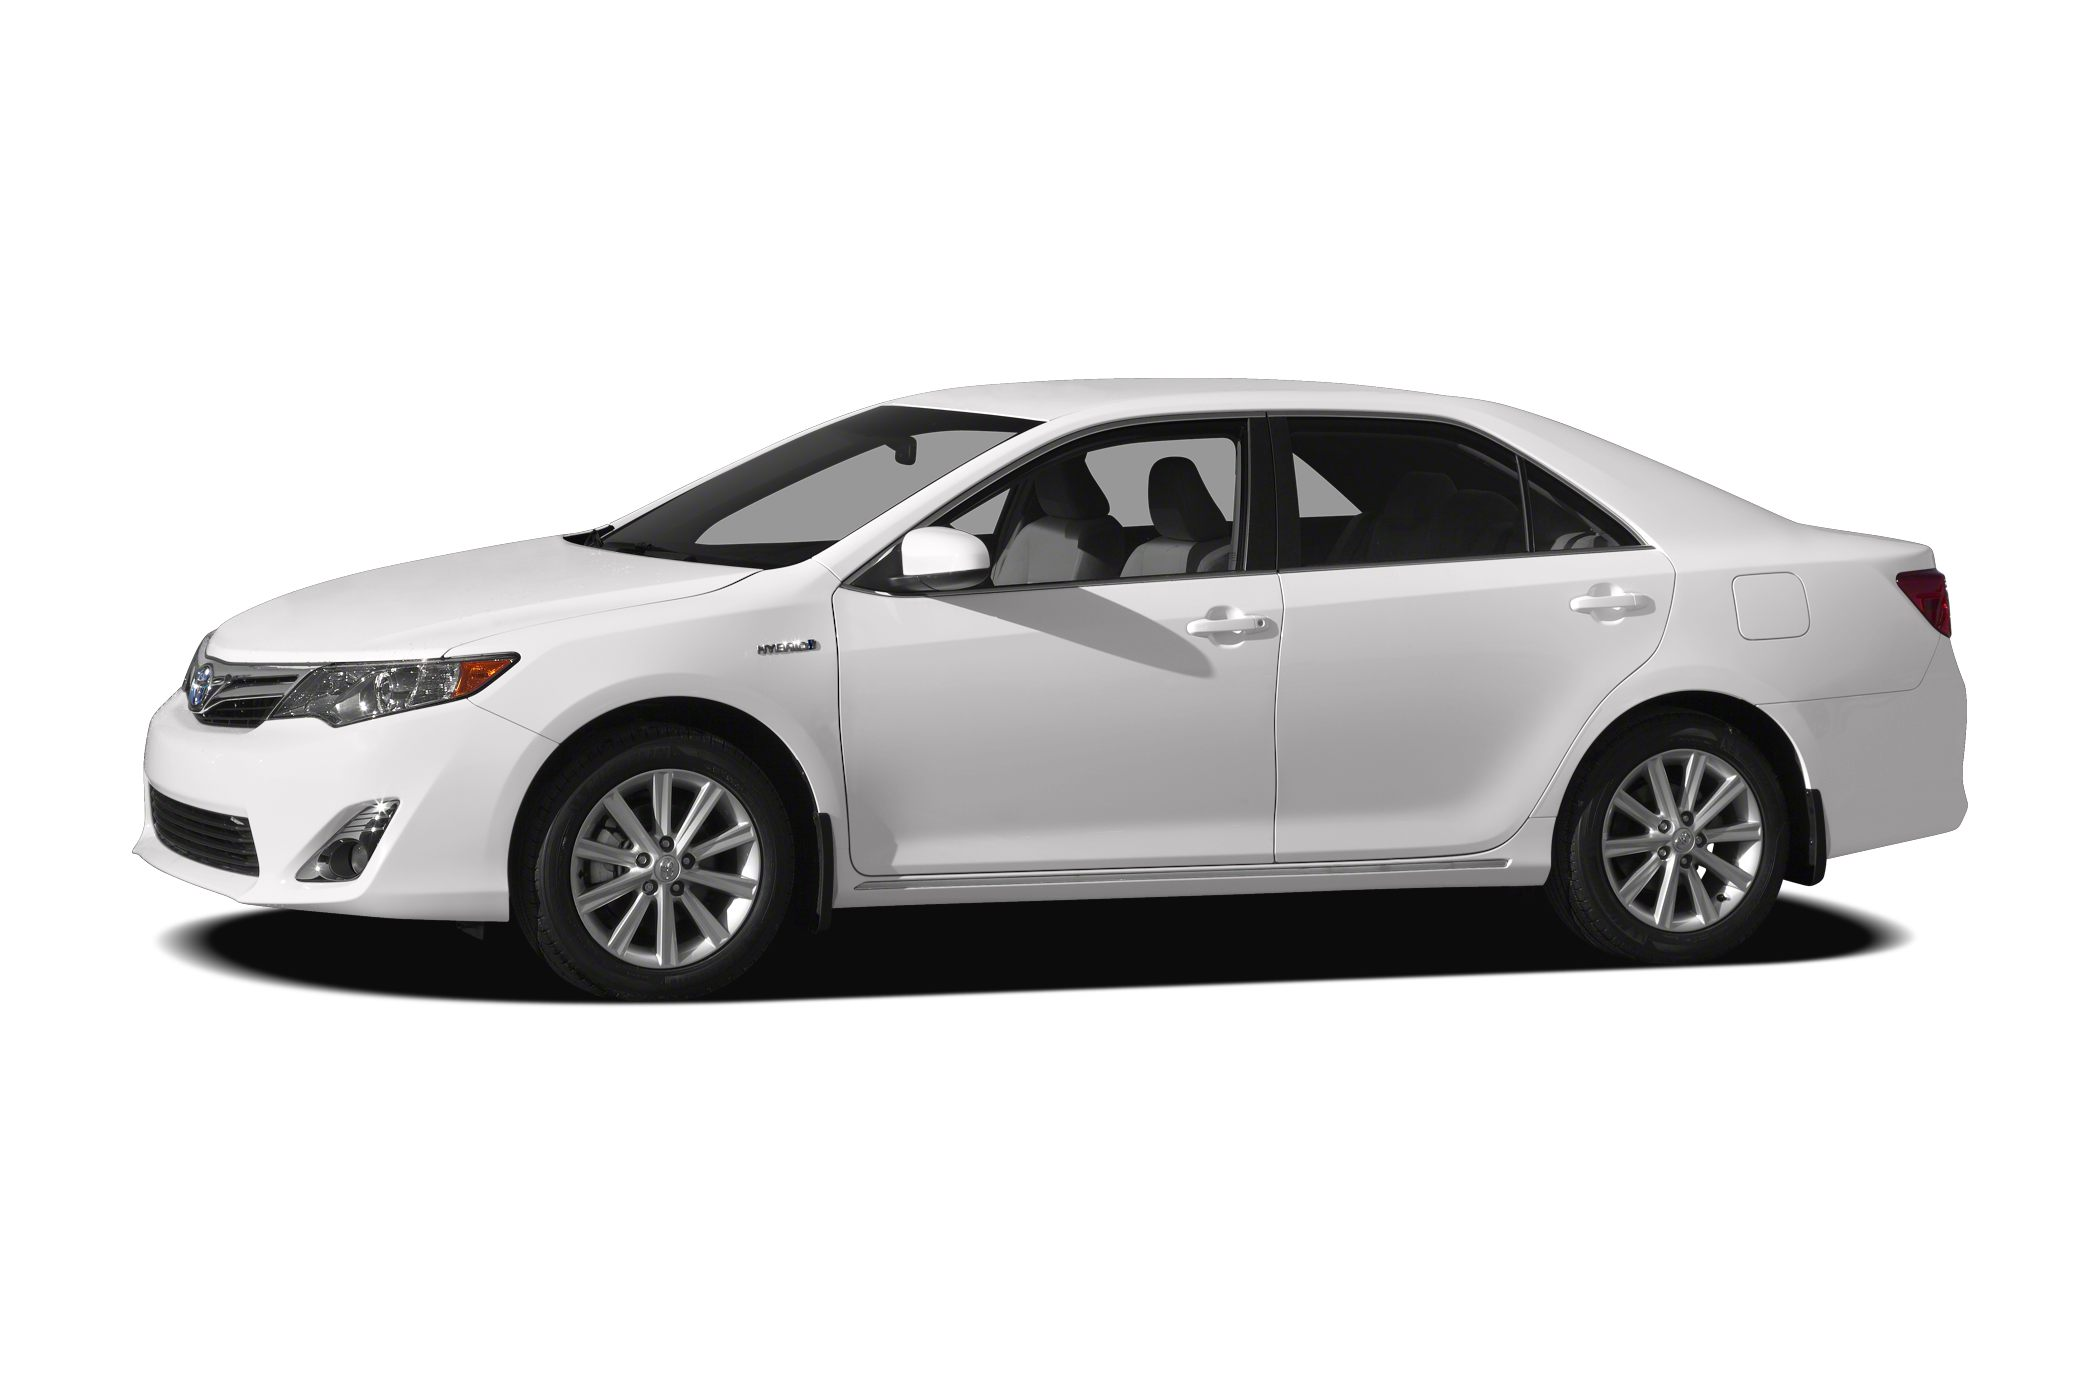 2012 Toyota Camry Hybrid XLE Sedan for sale in Buckhannon for $19,999 with 41,616 miles